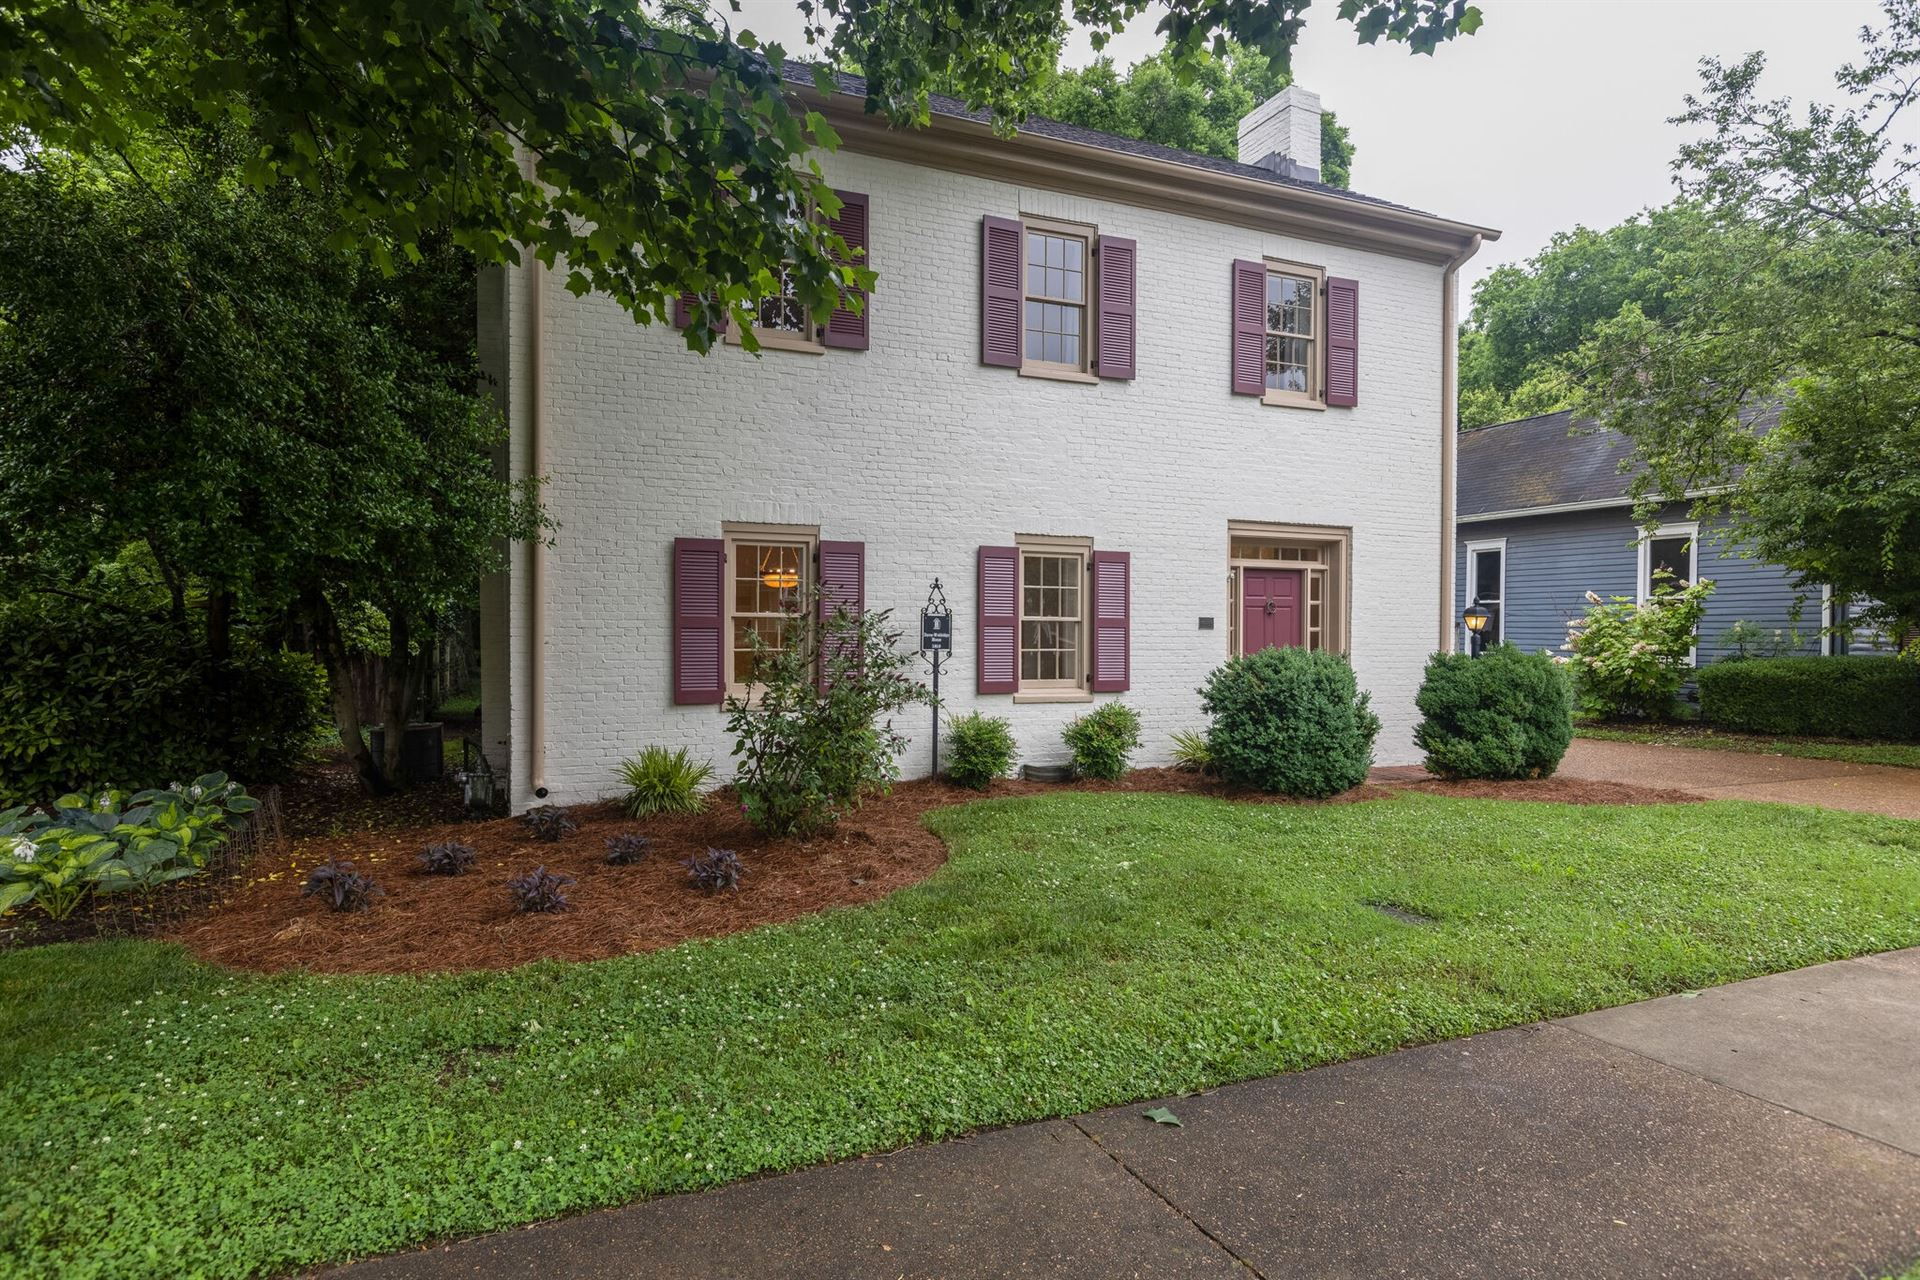 217 2nd Ave S, Franklin, TN 37064 - MLS#: 2261897